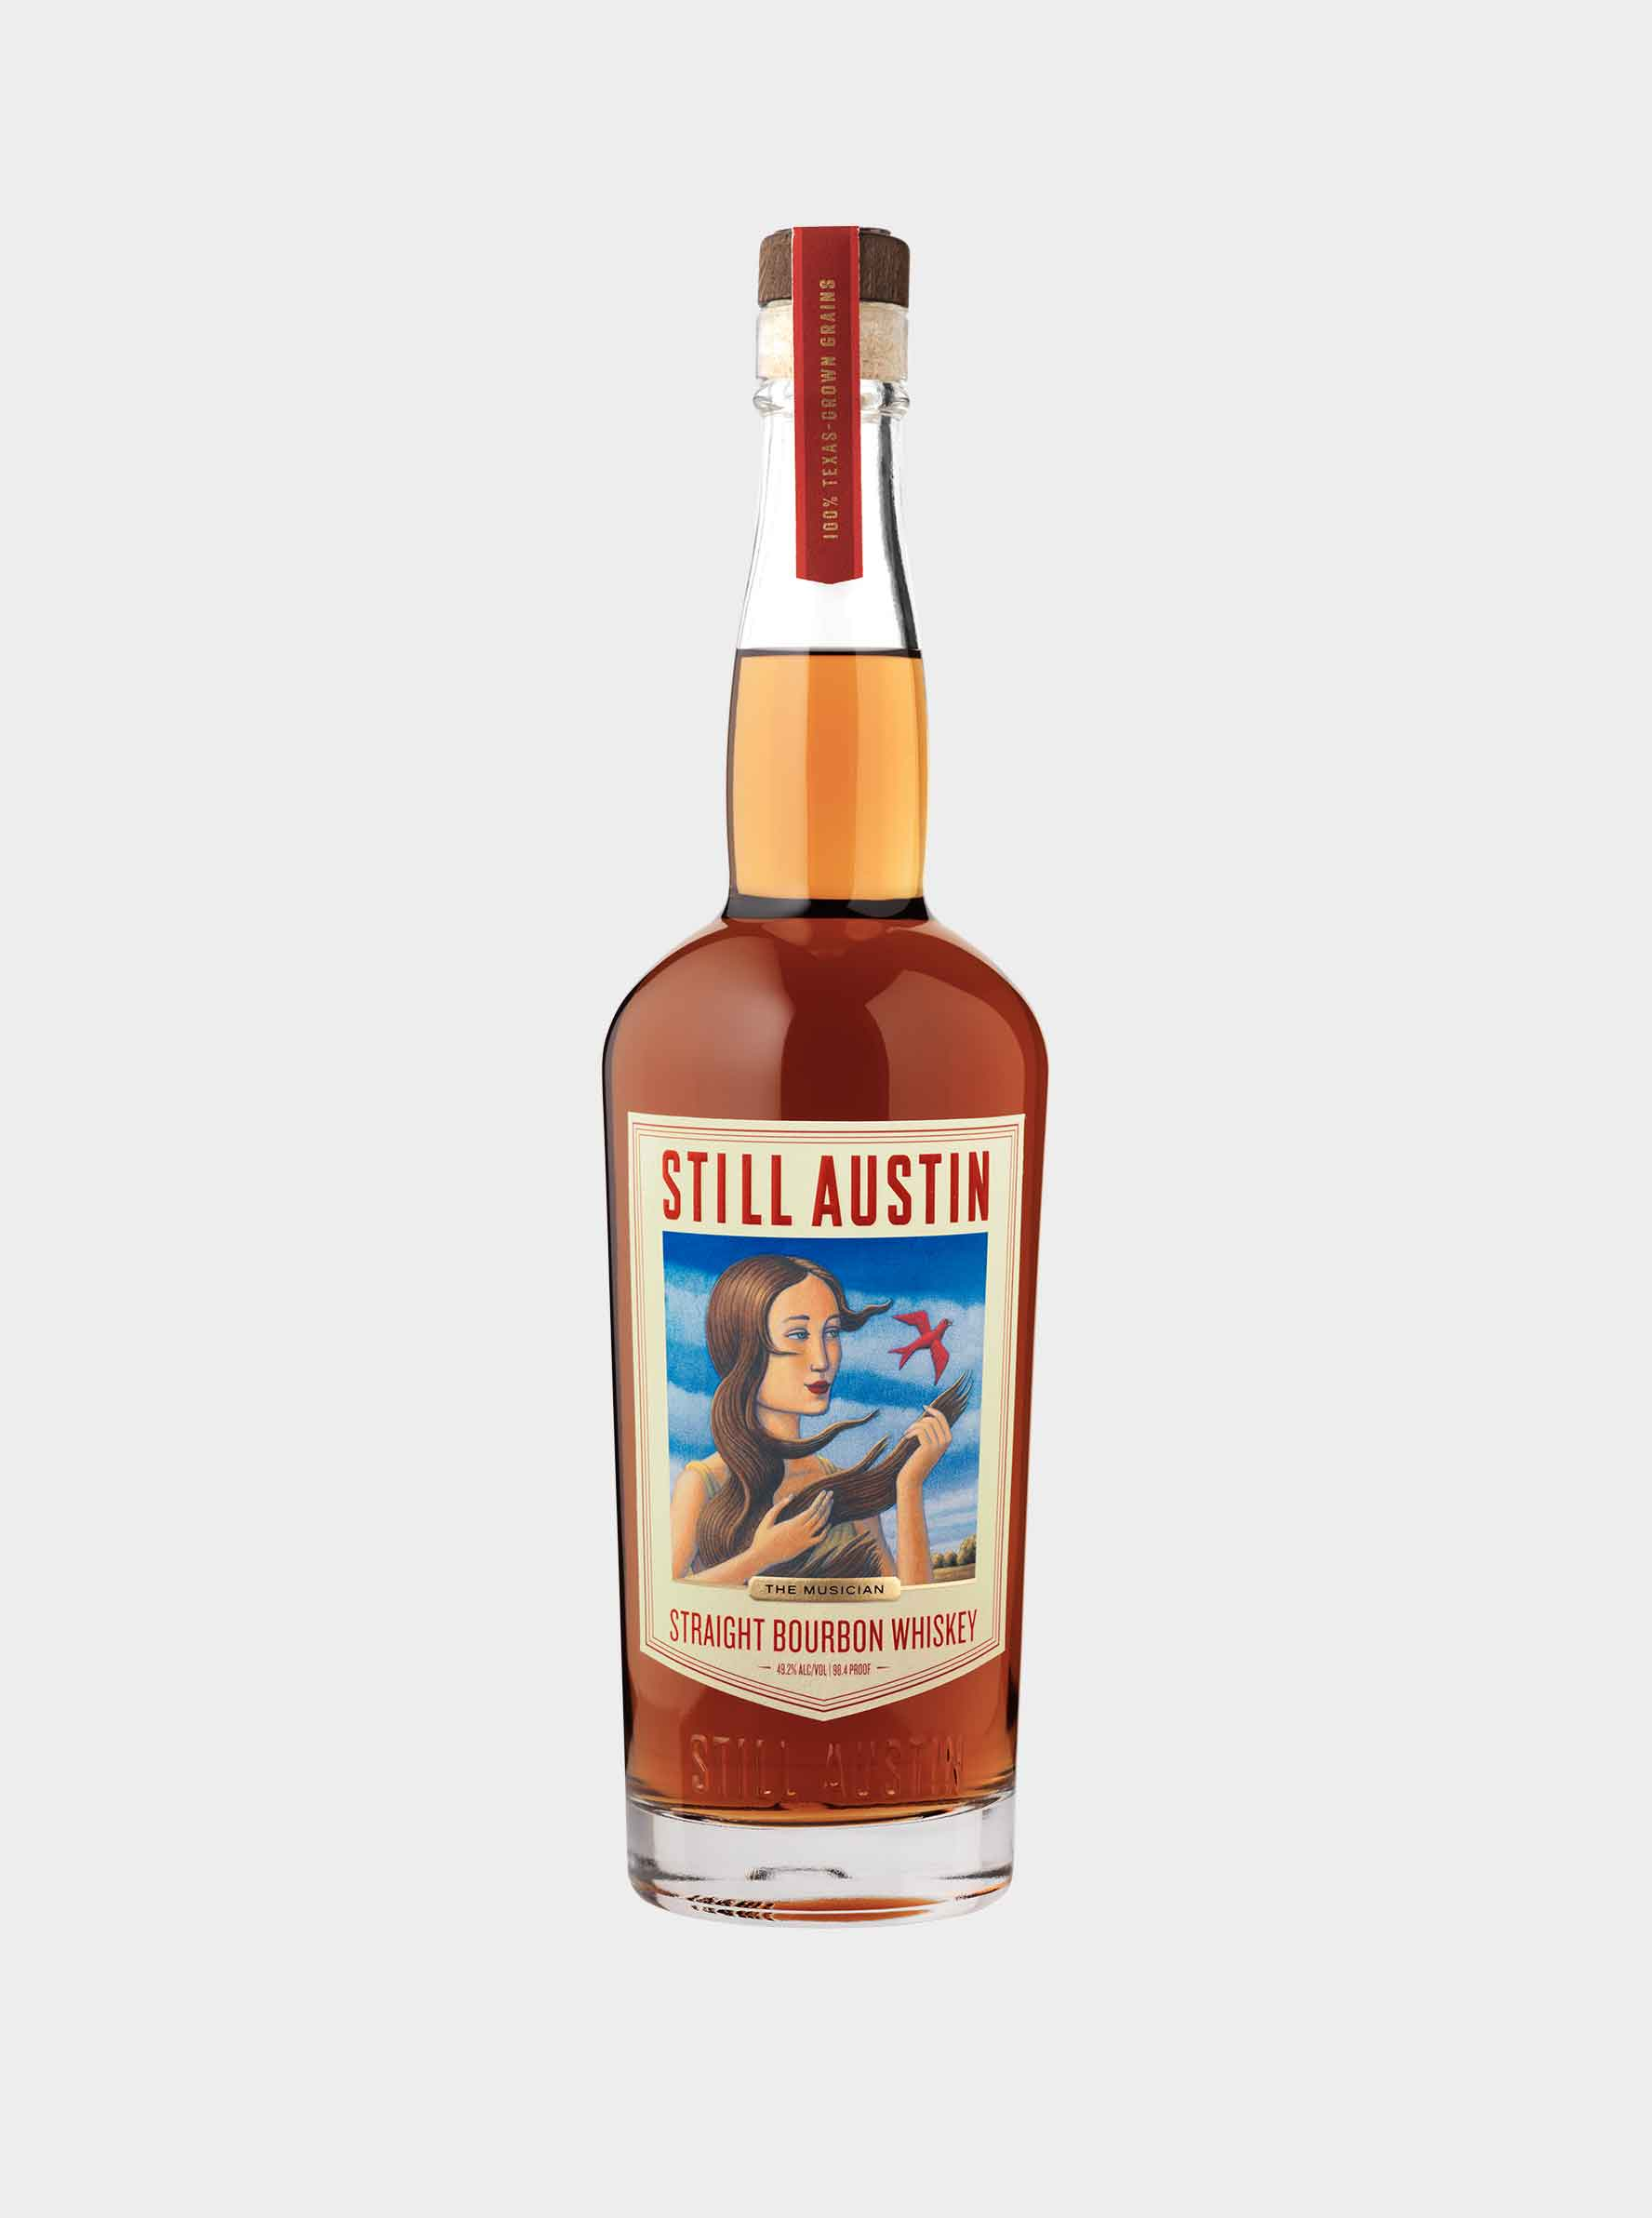 still austin whiskey straight bourbon whiskey bottle